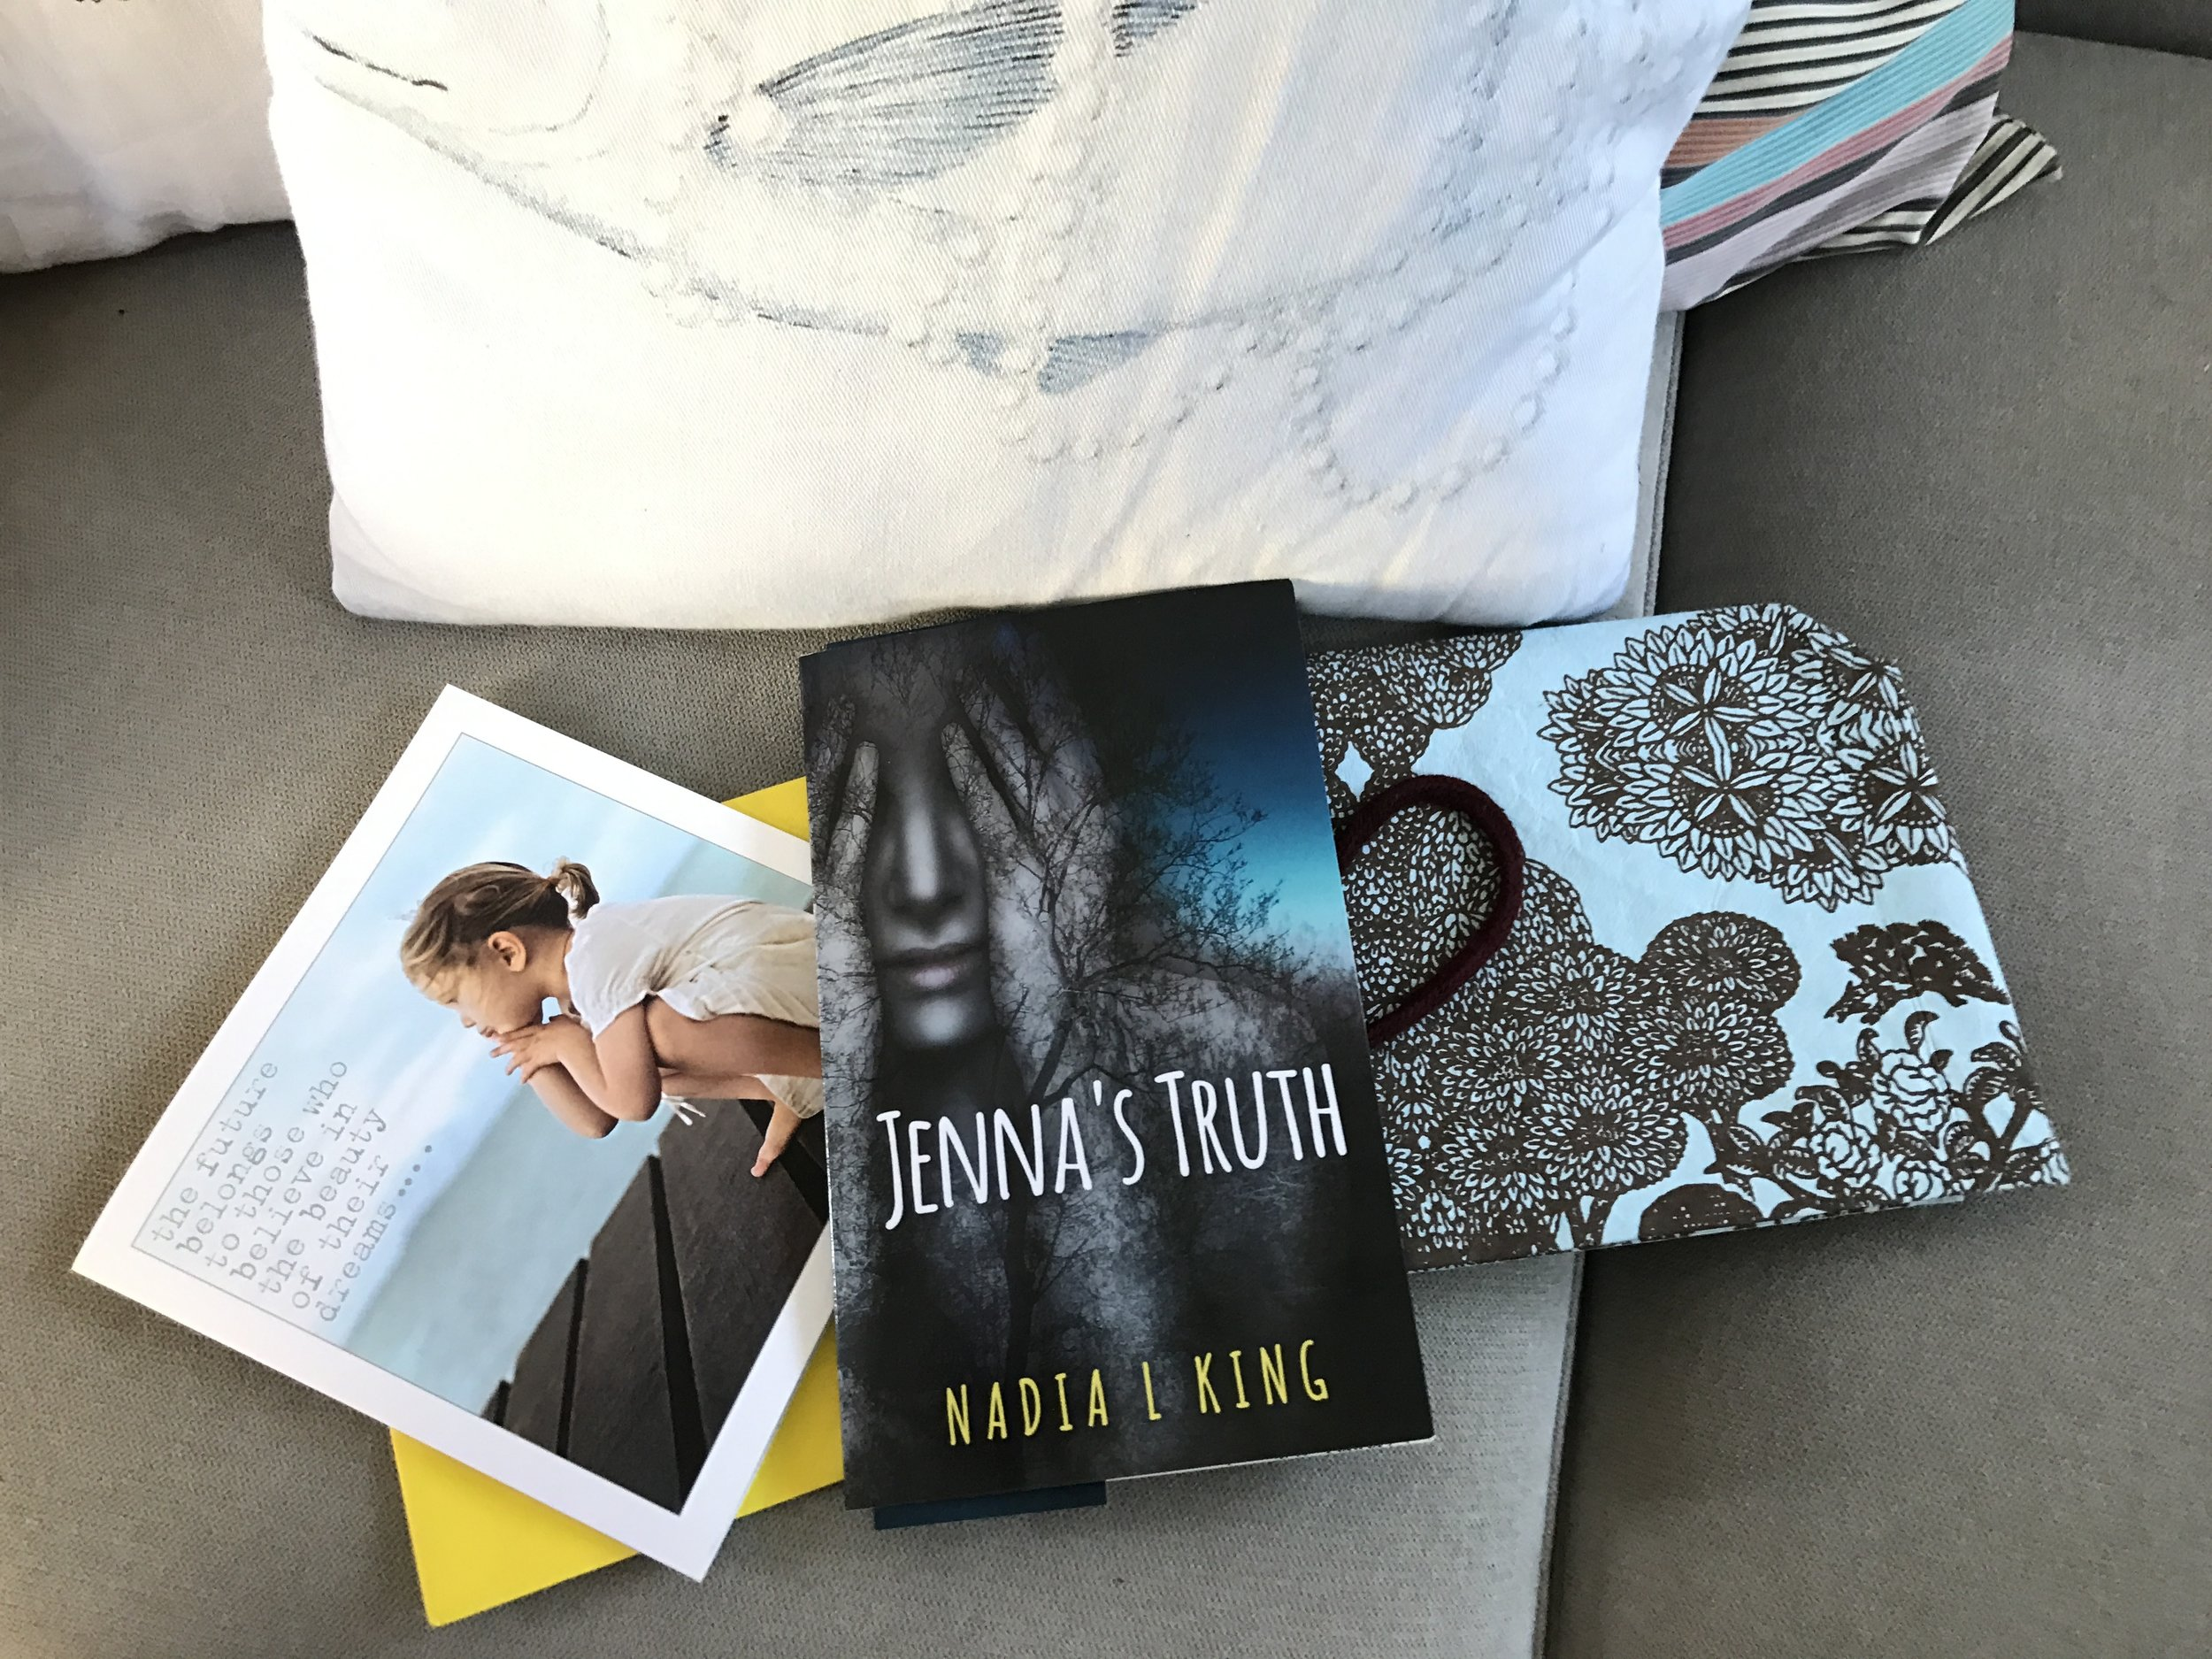 Jenna's Truth by Nadia L King, a powerful addition to novels confronting teen bullying head on